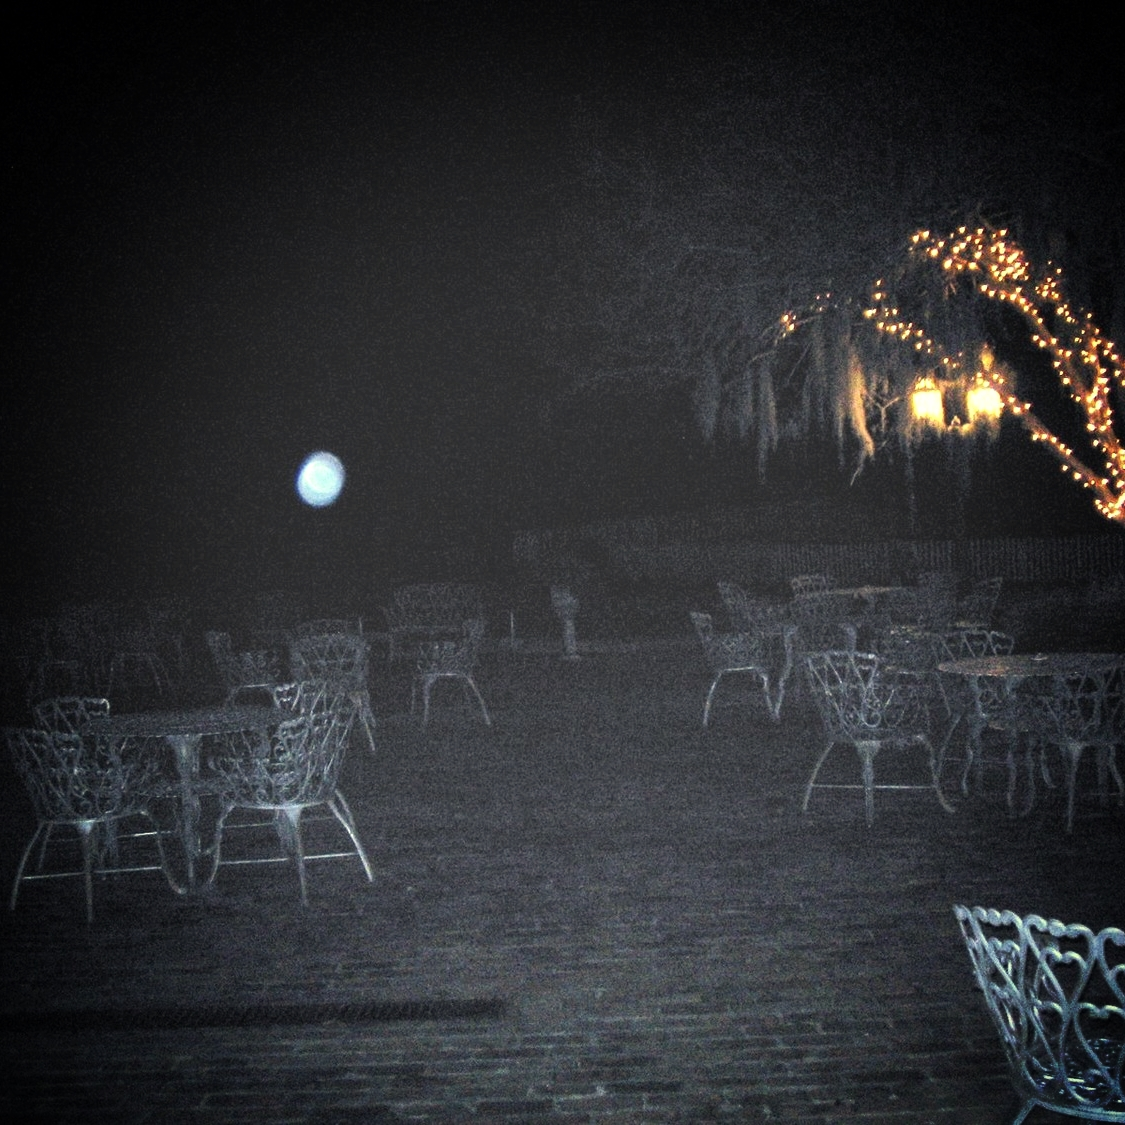 The Myrtles Plantation,  Orb where Celeste saw the group of people dressed in 1920s attire.